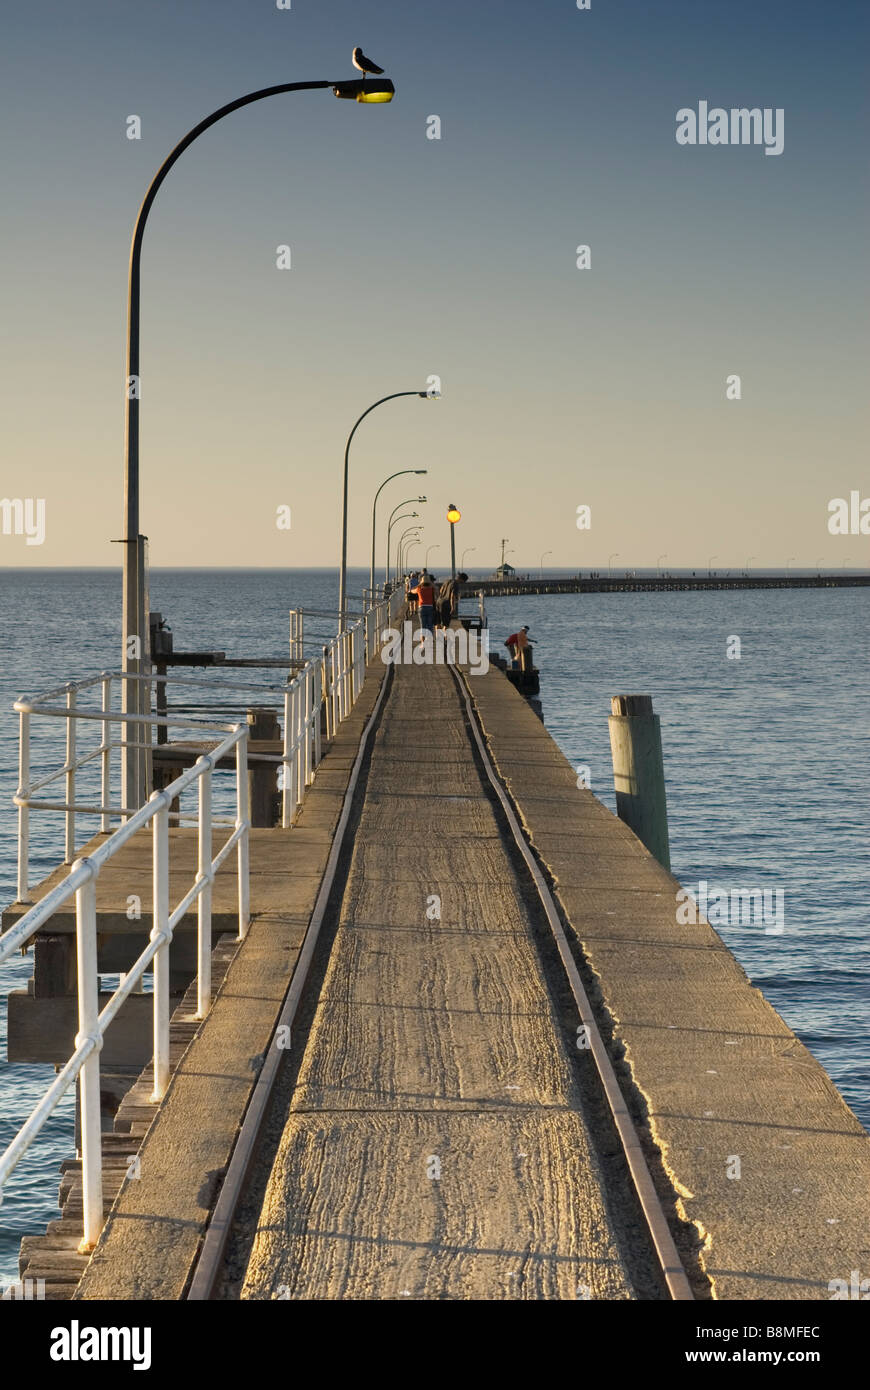 Busselton Jetty with old rail line - Stock Image